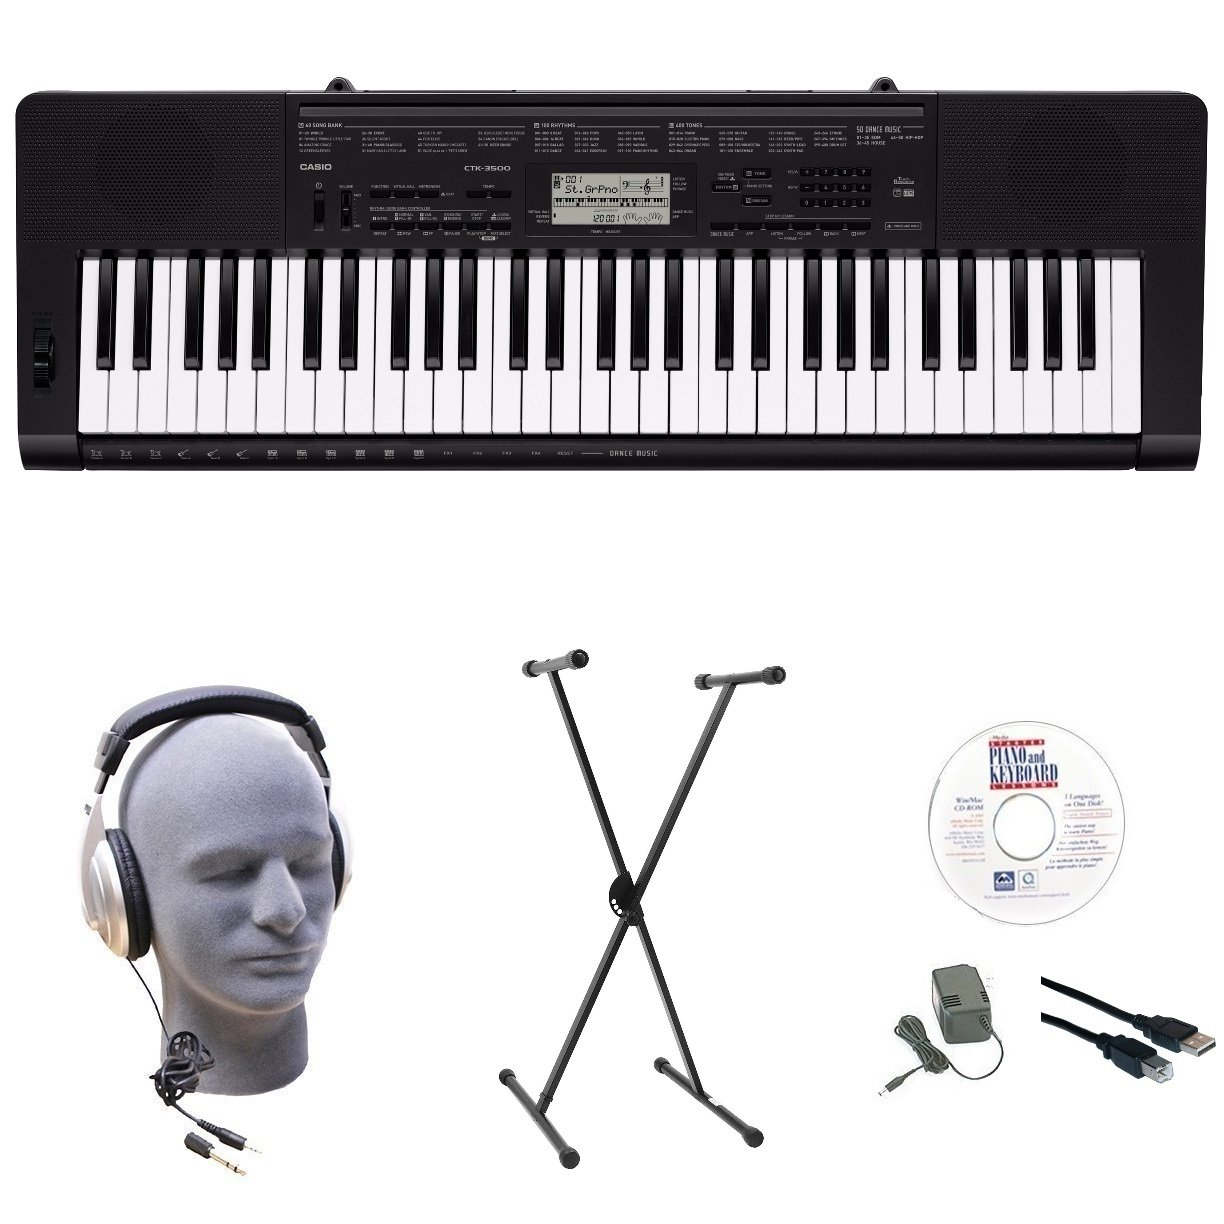 Casio CTK-3500 EPA 61-Key Premium Keyboard Pack with Stand, Headphones, Power Supply, USB Cable & eMedia Instructional Software